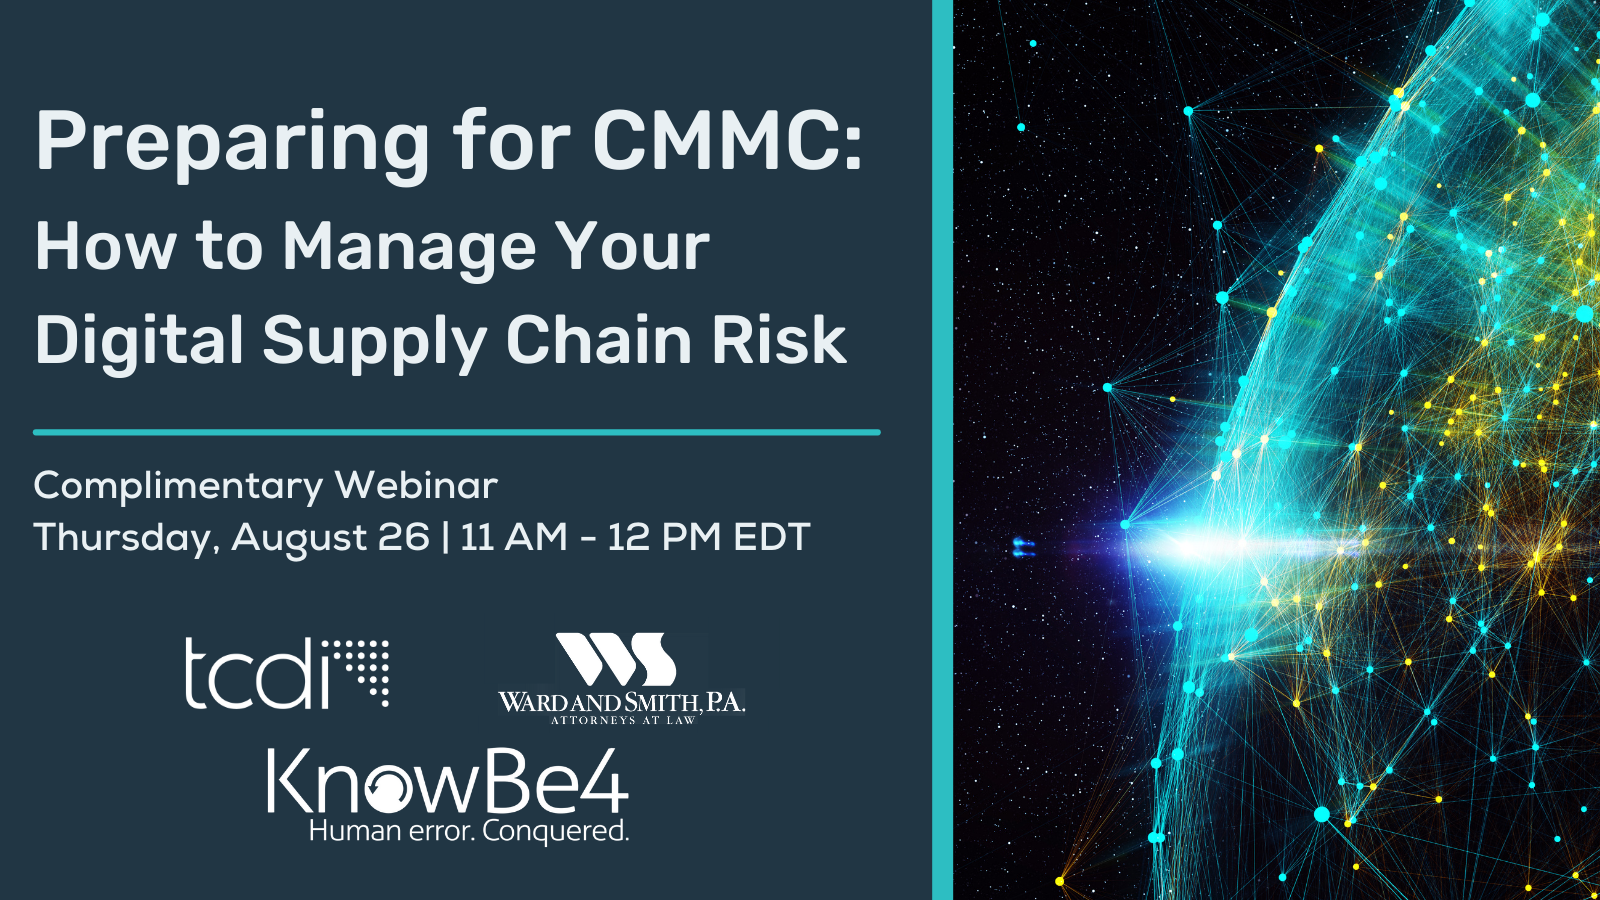 Preparing for CMMC: How to Manage Your Digital Supply Chain Risk